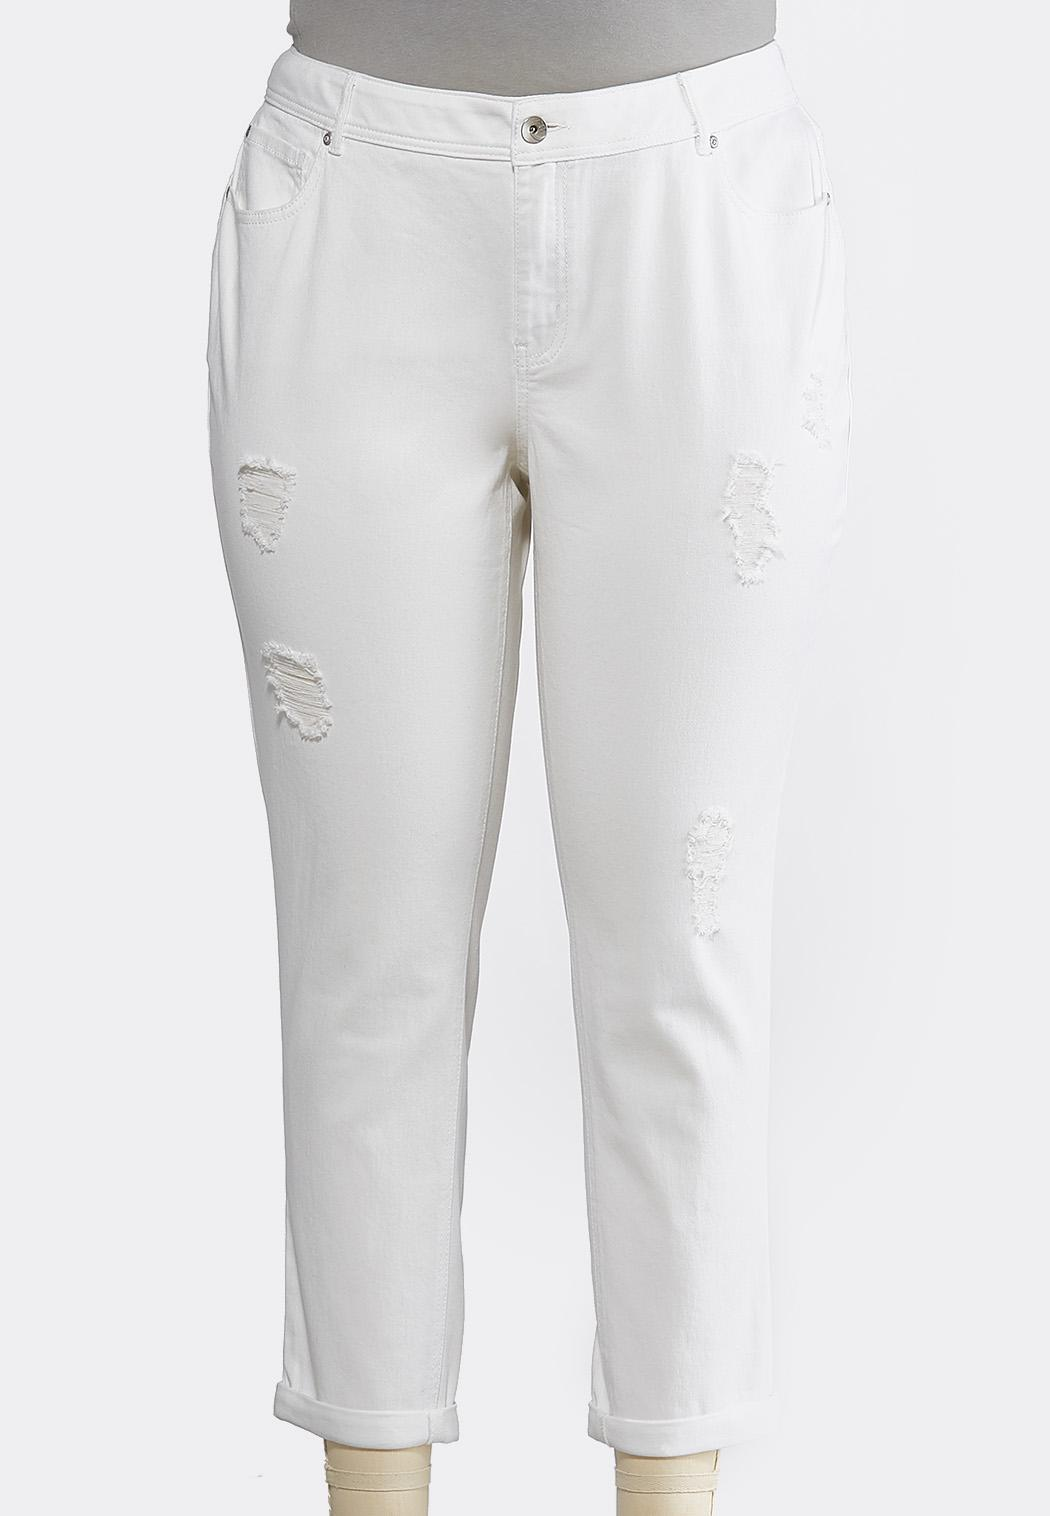 Plus Size Curvy White Distressed Jeans